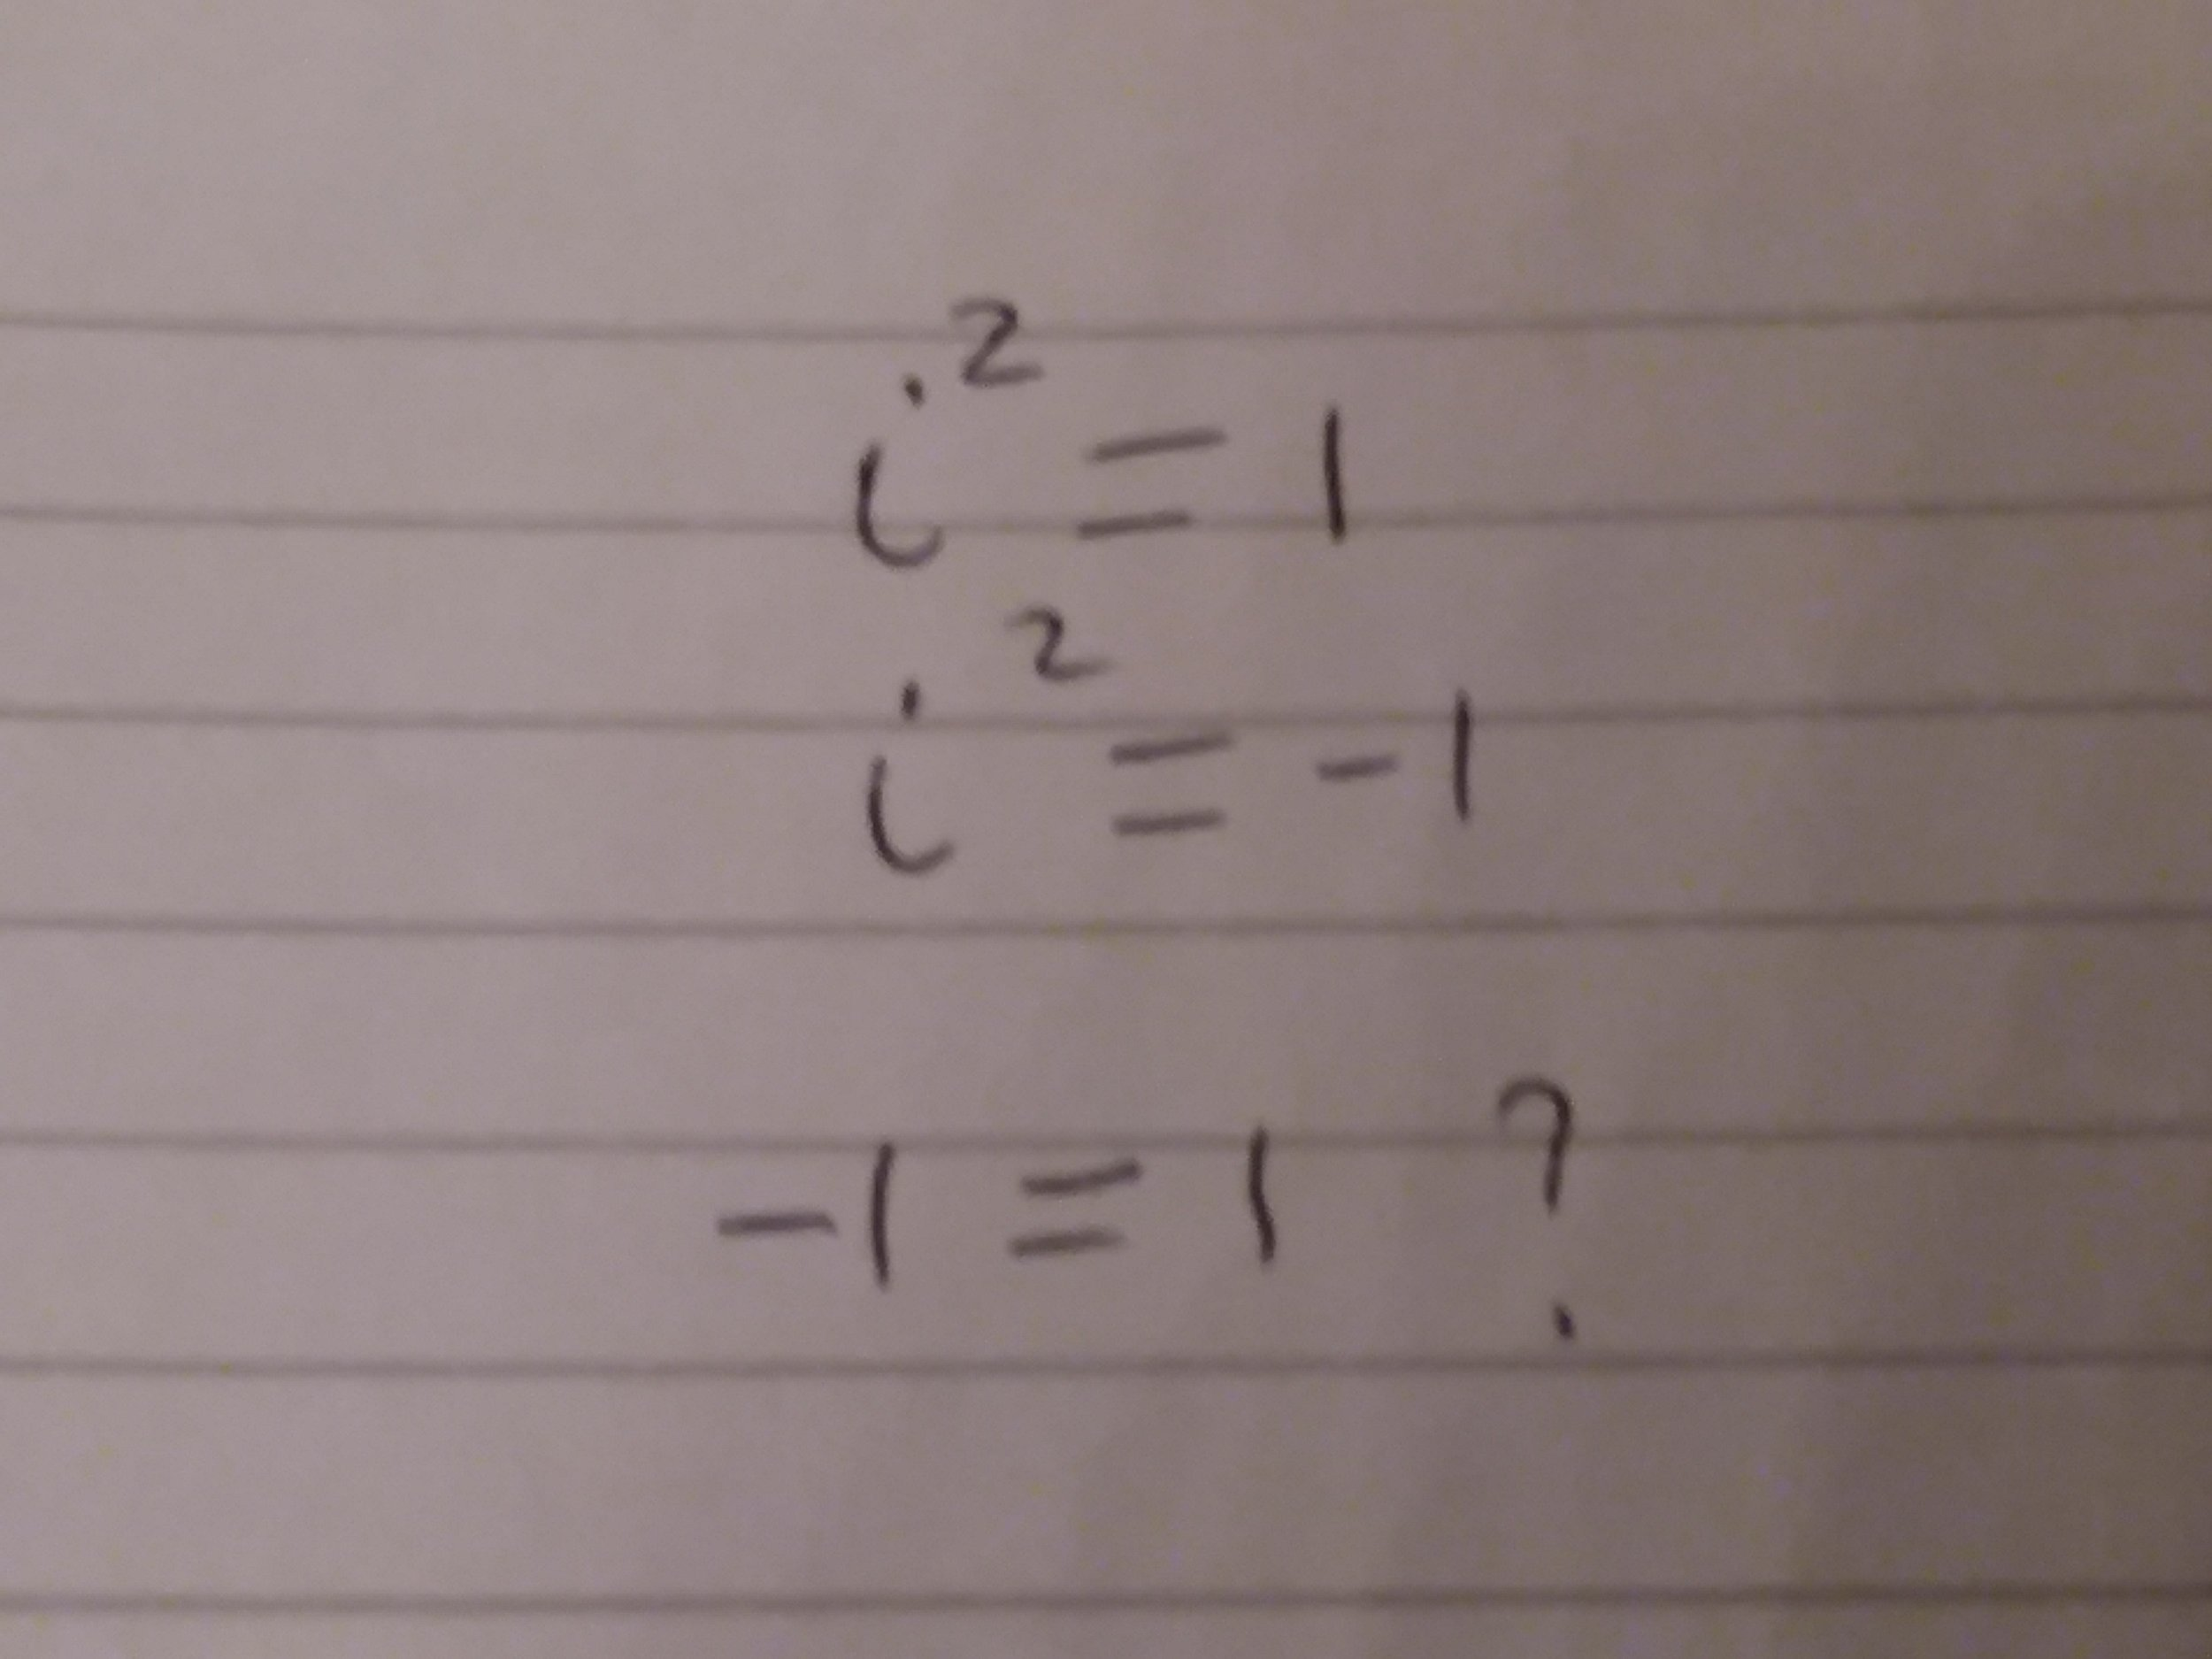 So we had i^2=1, but by defintion i^2=-1, so -1=1? Something is clearly wrong here.